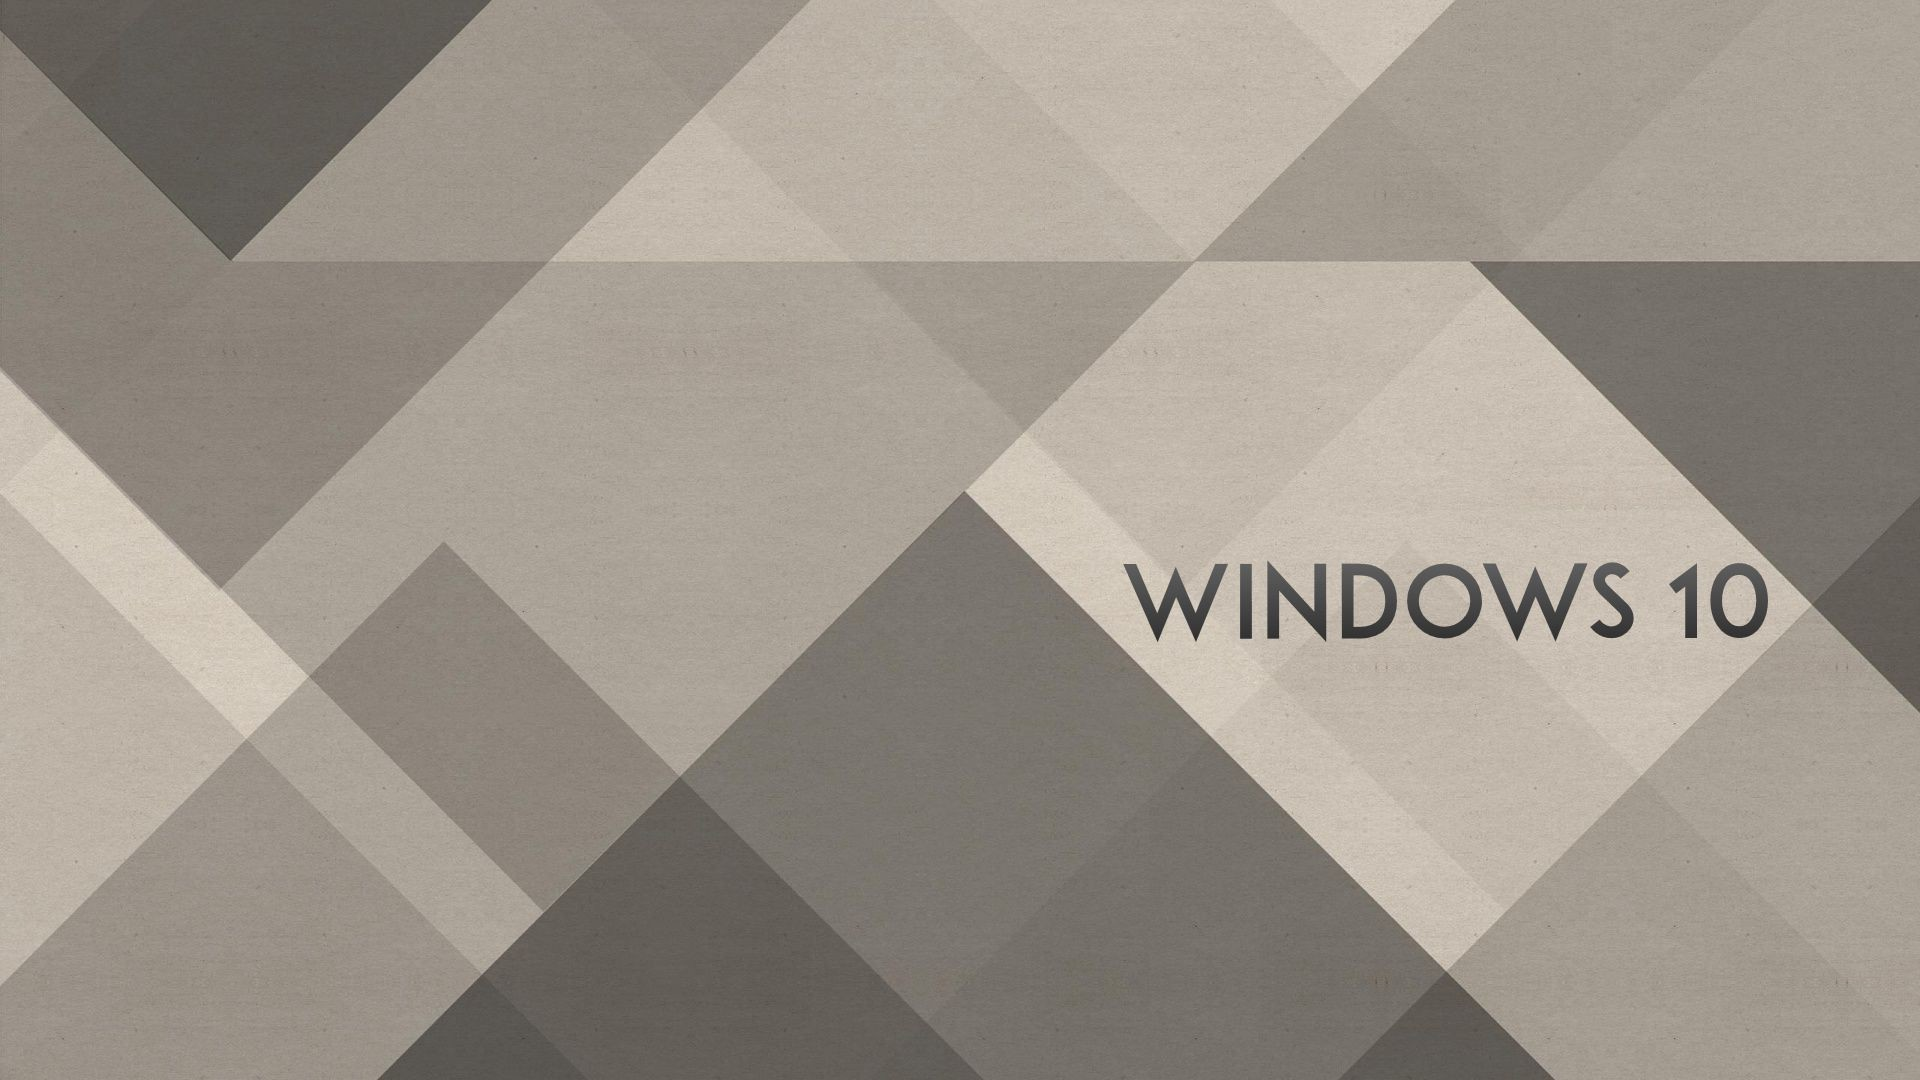 1920x1080 Windows 10 Wallpaper 1080p Full HD Grey Abstract - HD-Desktop